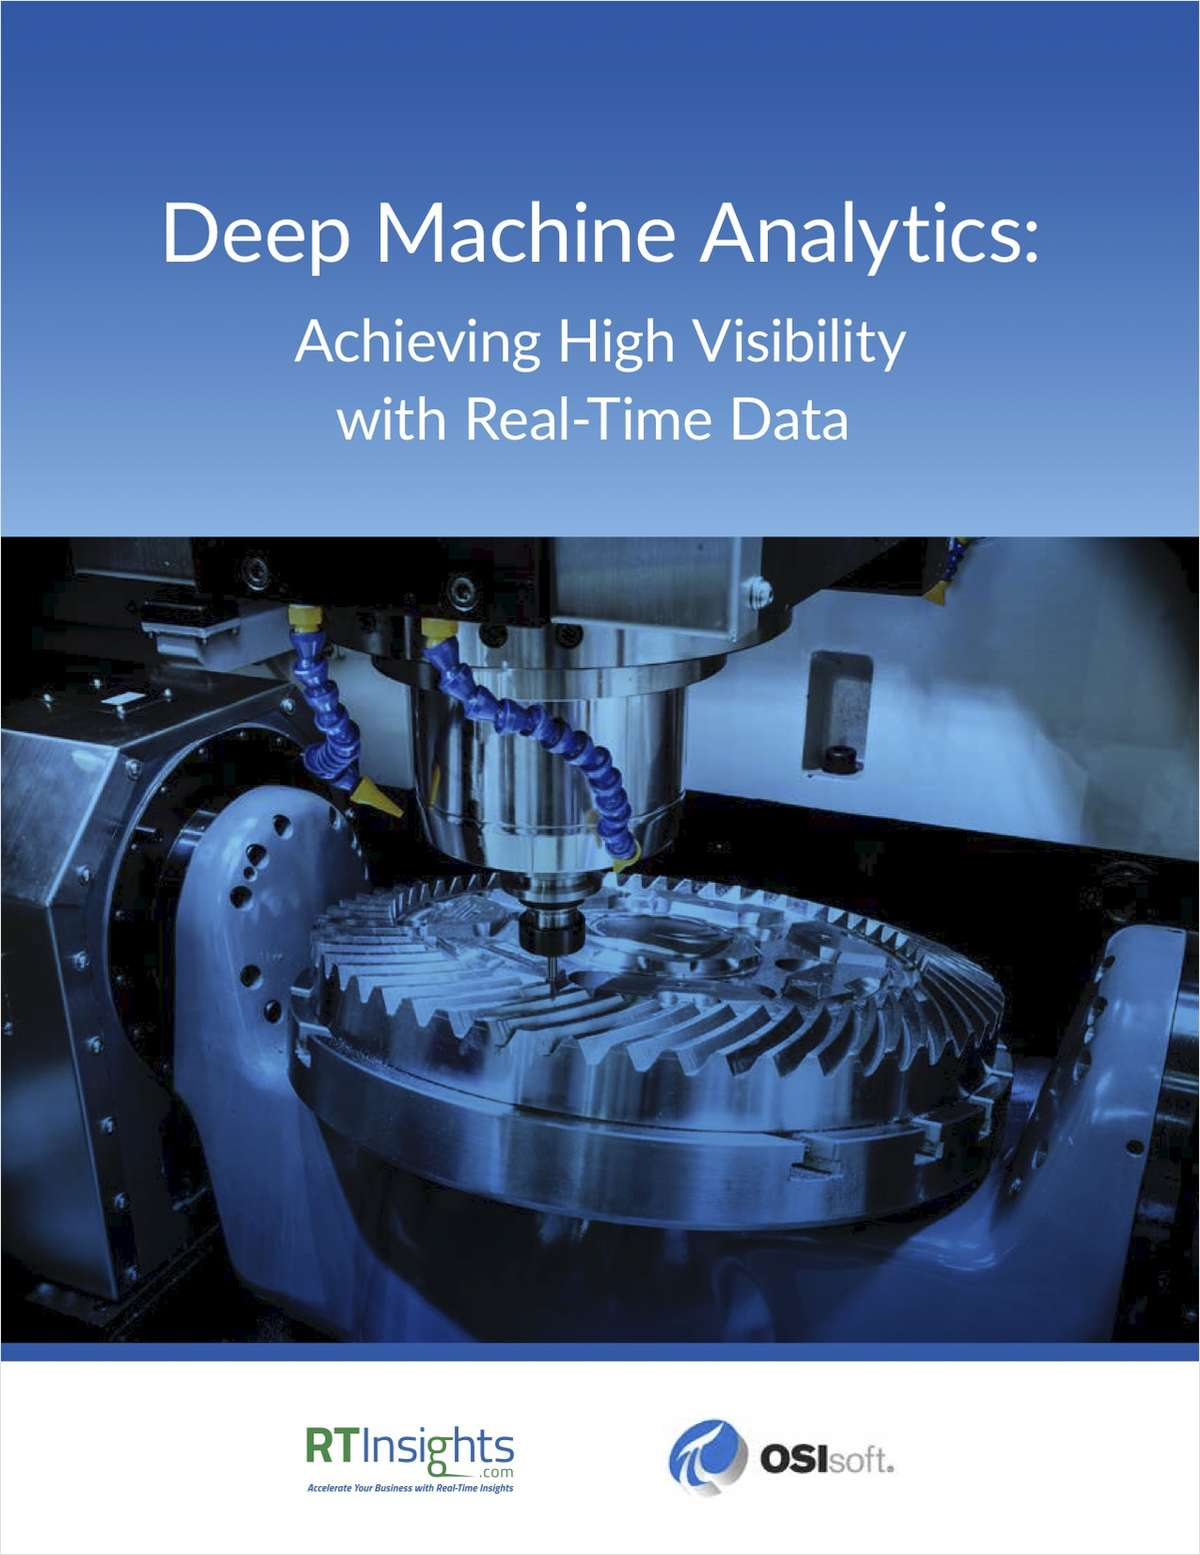 Deep Machine Analytics: Achieving High-Visibility with Real-Time Data